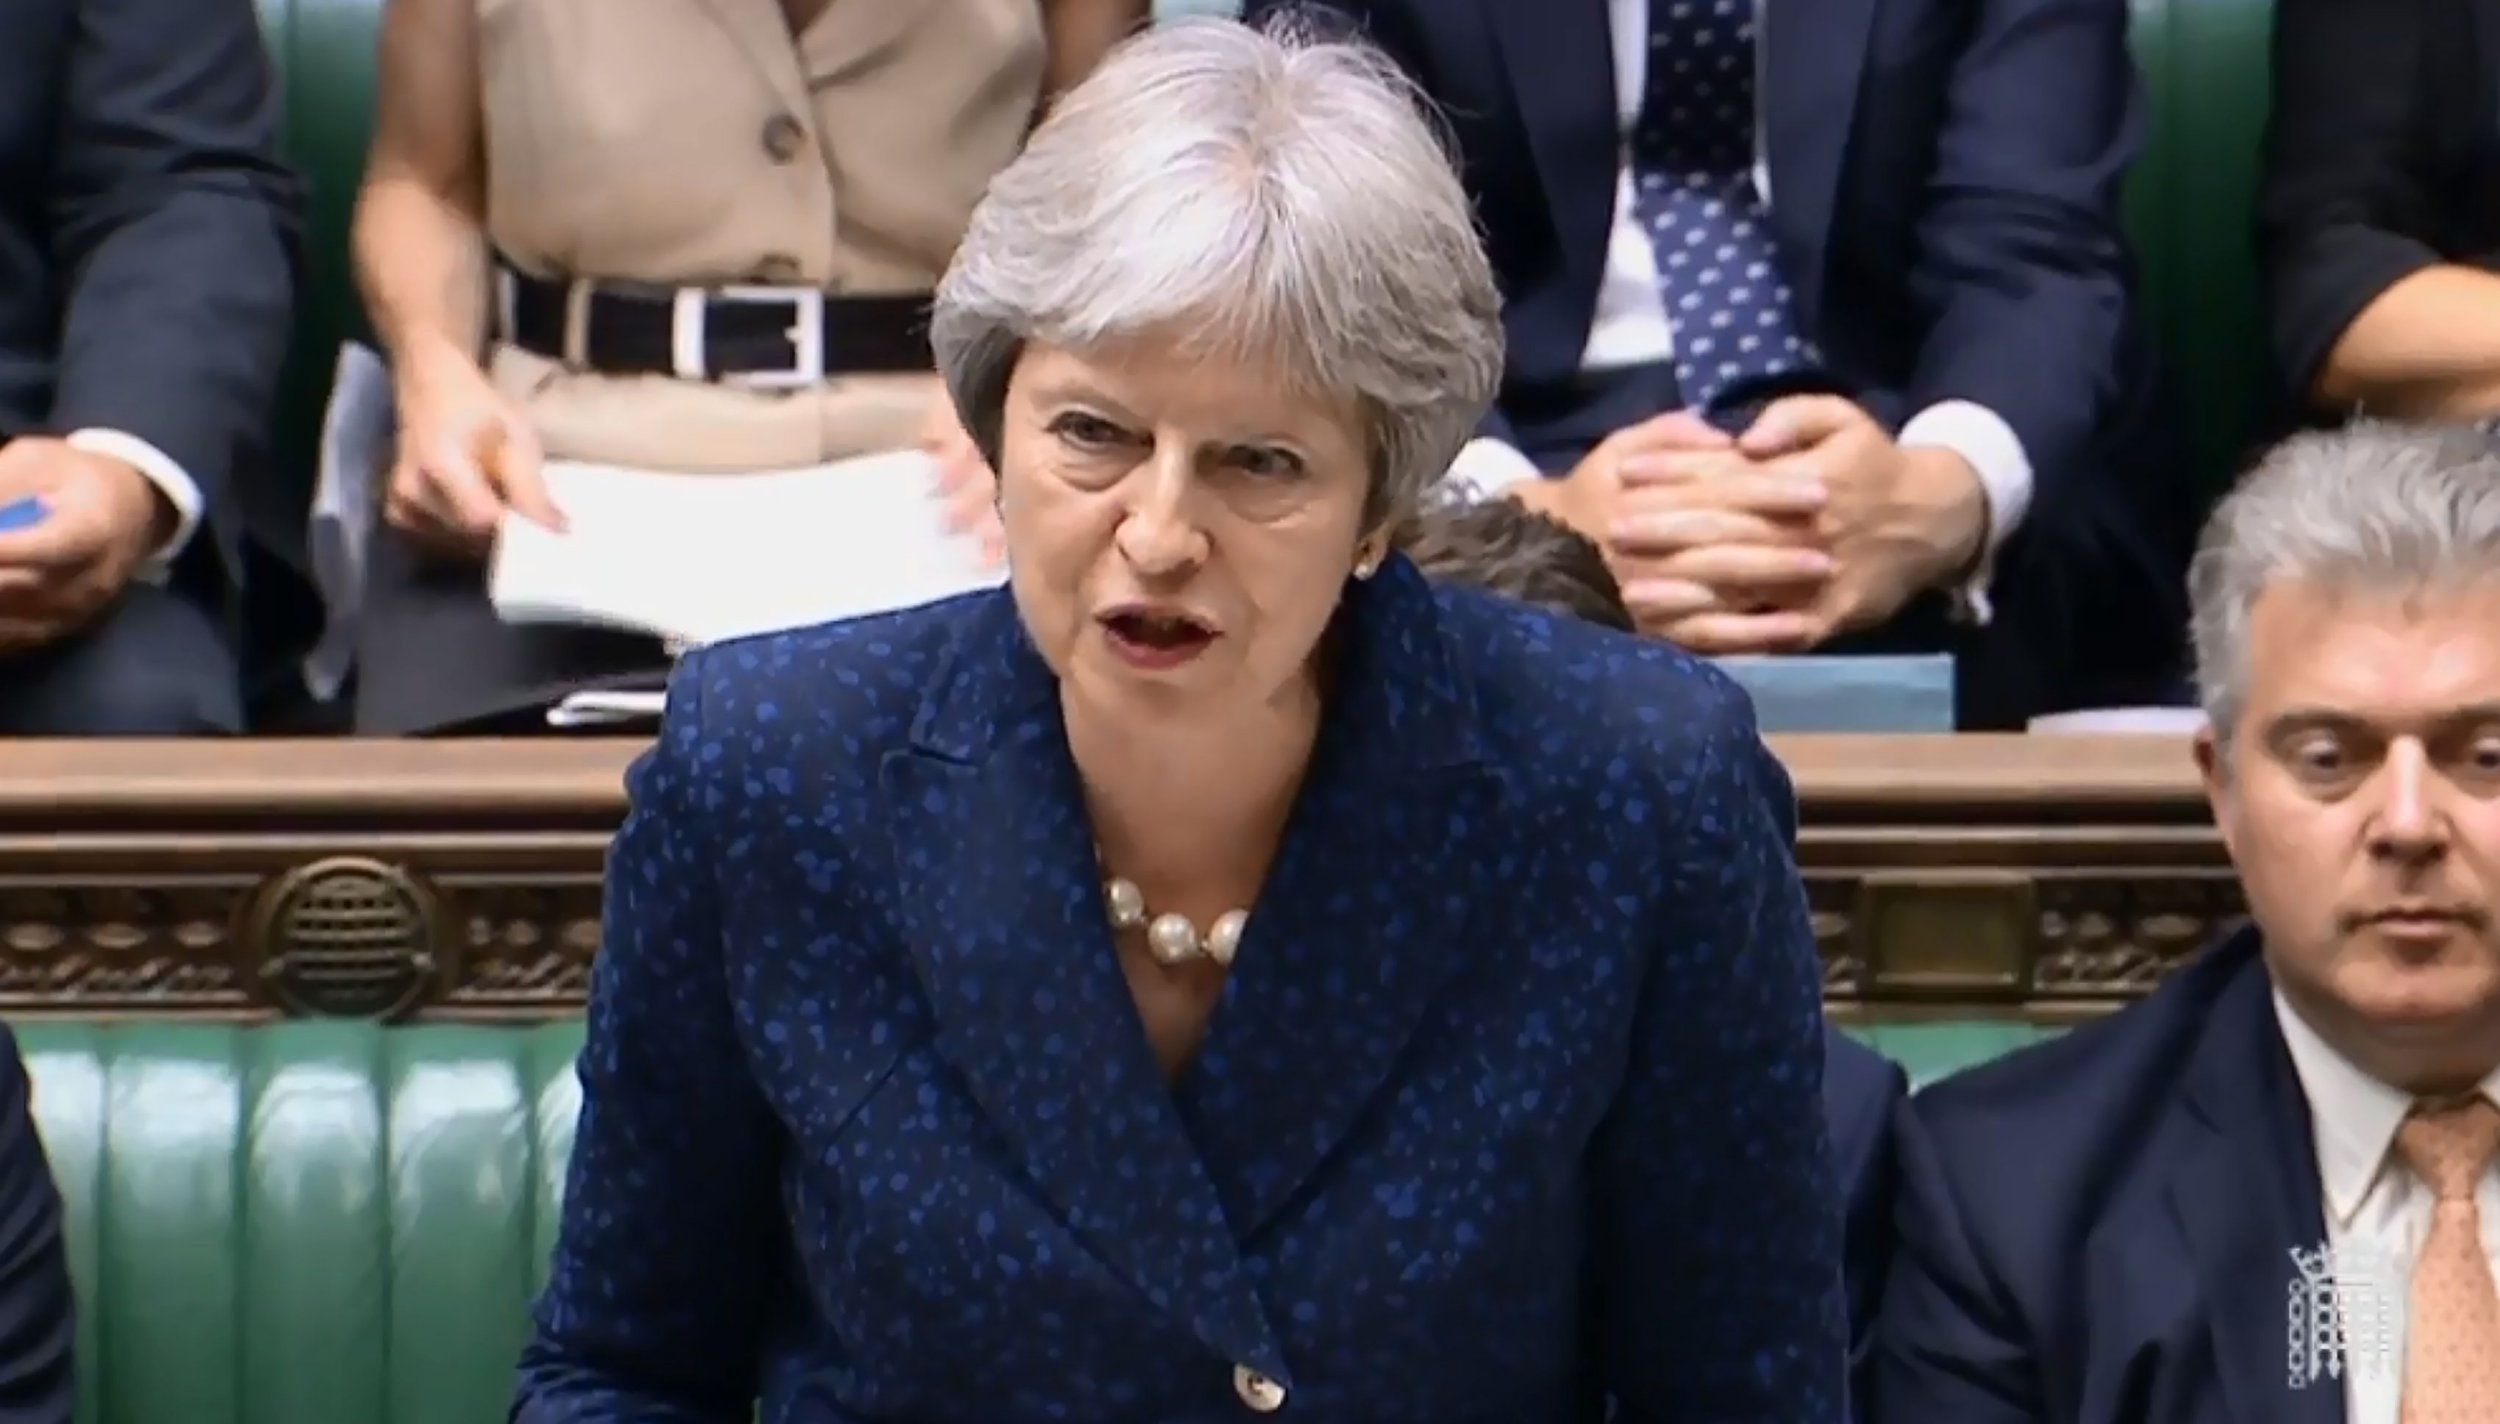 """A video grab from footage broadcast by the UK Parliament's Parliamentary Recording Unit (PRU) shows Britain's Prime Minister Theresa May giving a statement to the the House of Commons on Brexit in London on July 9, 2018. British Prime Minister Theresa May's government imploded on July 9 as Foreign Secretary Boris Johnson followed Brexit minister David Davis out the exit door over her masterplan for Britain's future outside the EU. / AFP PHOTO / PRU / HO / RESTRICTED TO EDITORIAL USE - NO USE FOR ENTERTAINMENT, SATIRICAL, ADVERTISING PURPOSES - MANDATORY CREDIT """" AFP PHOTO / PRU """"HO/AFP/Getty Images"""